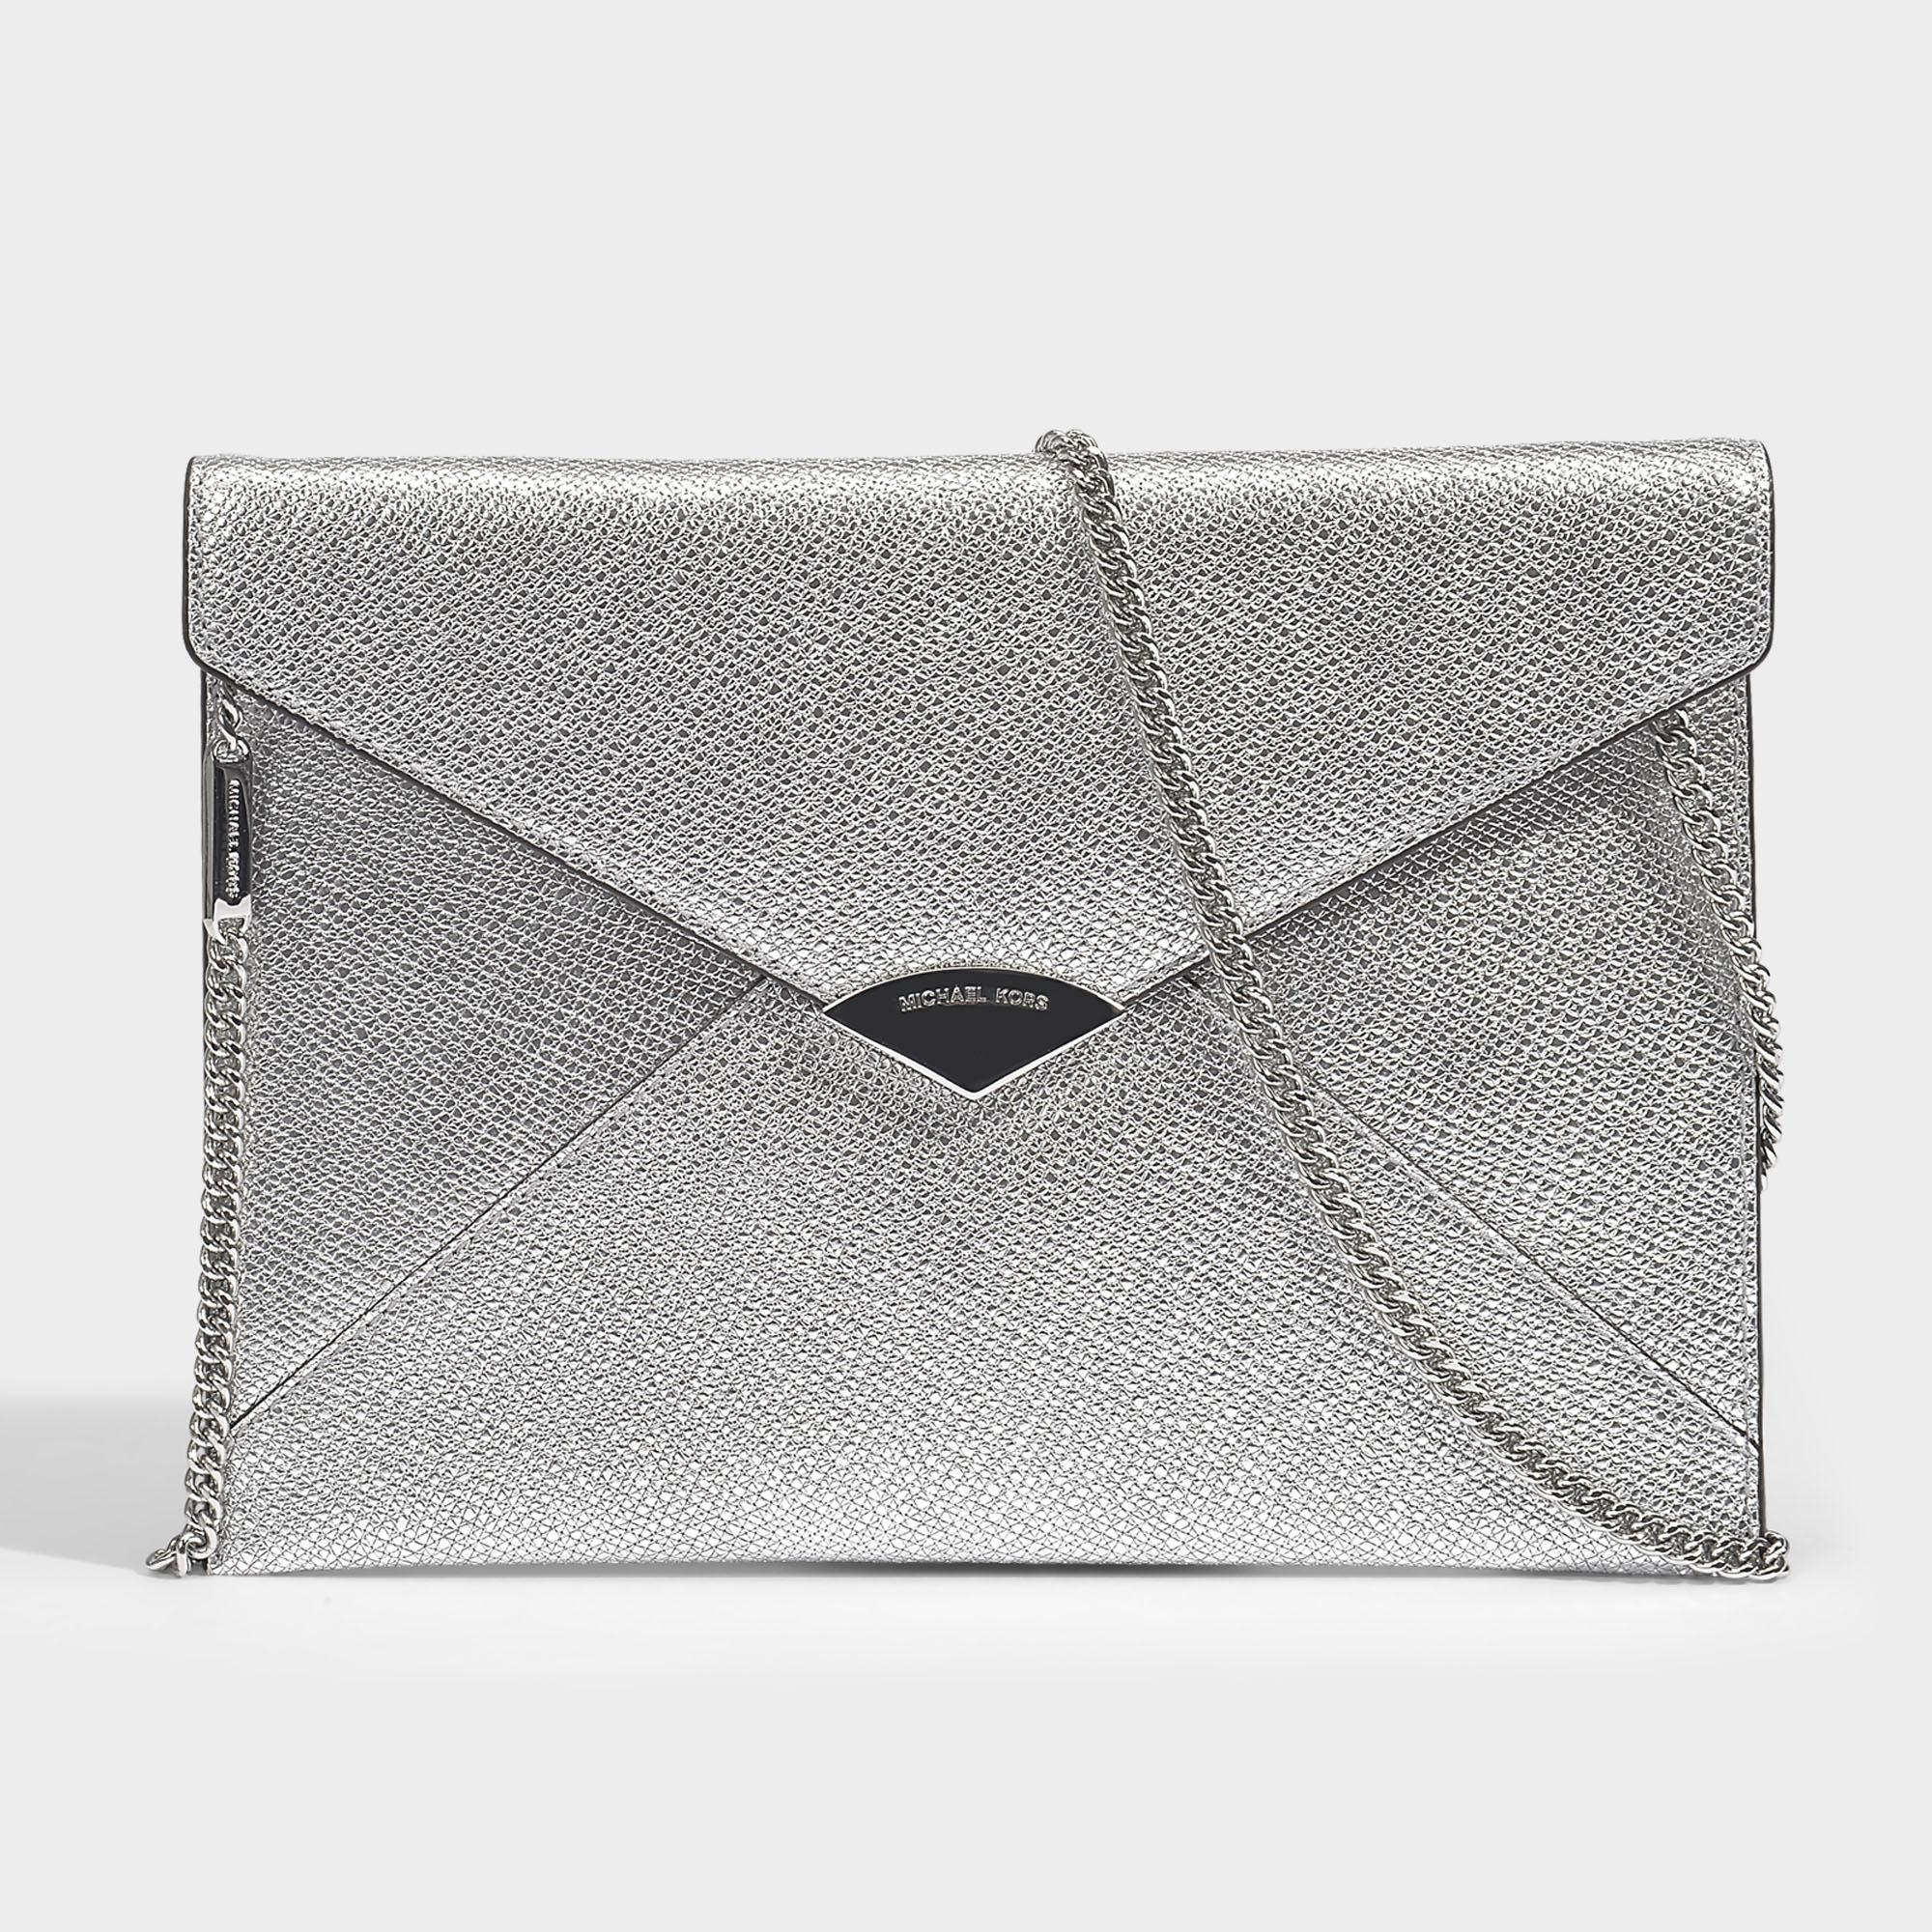 Barbara Large Soft Envelope Clutch in Black Metallic Calfskin Leather Michael Michael Kors E6RGp